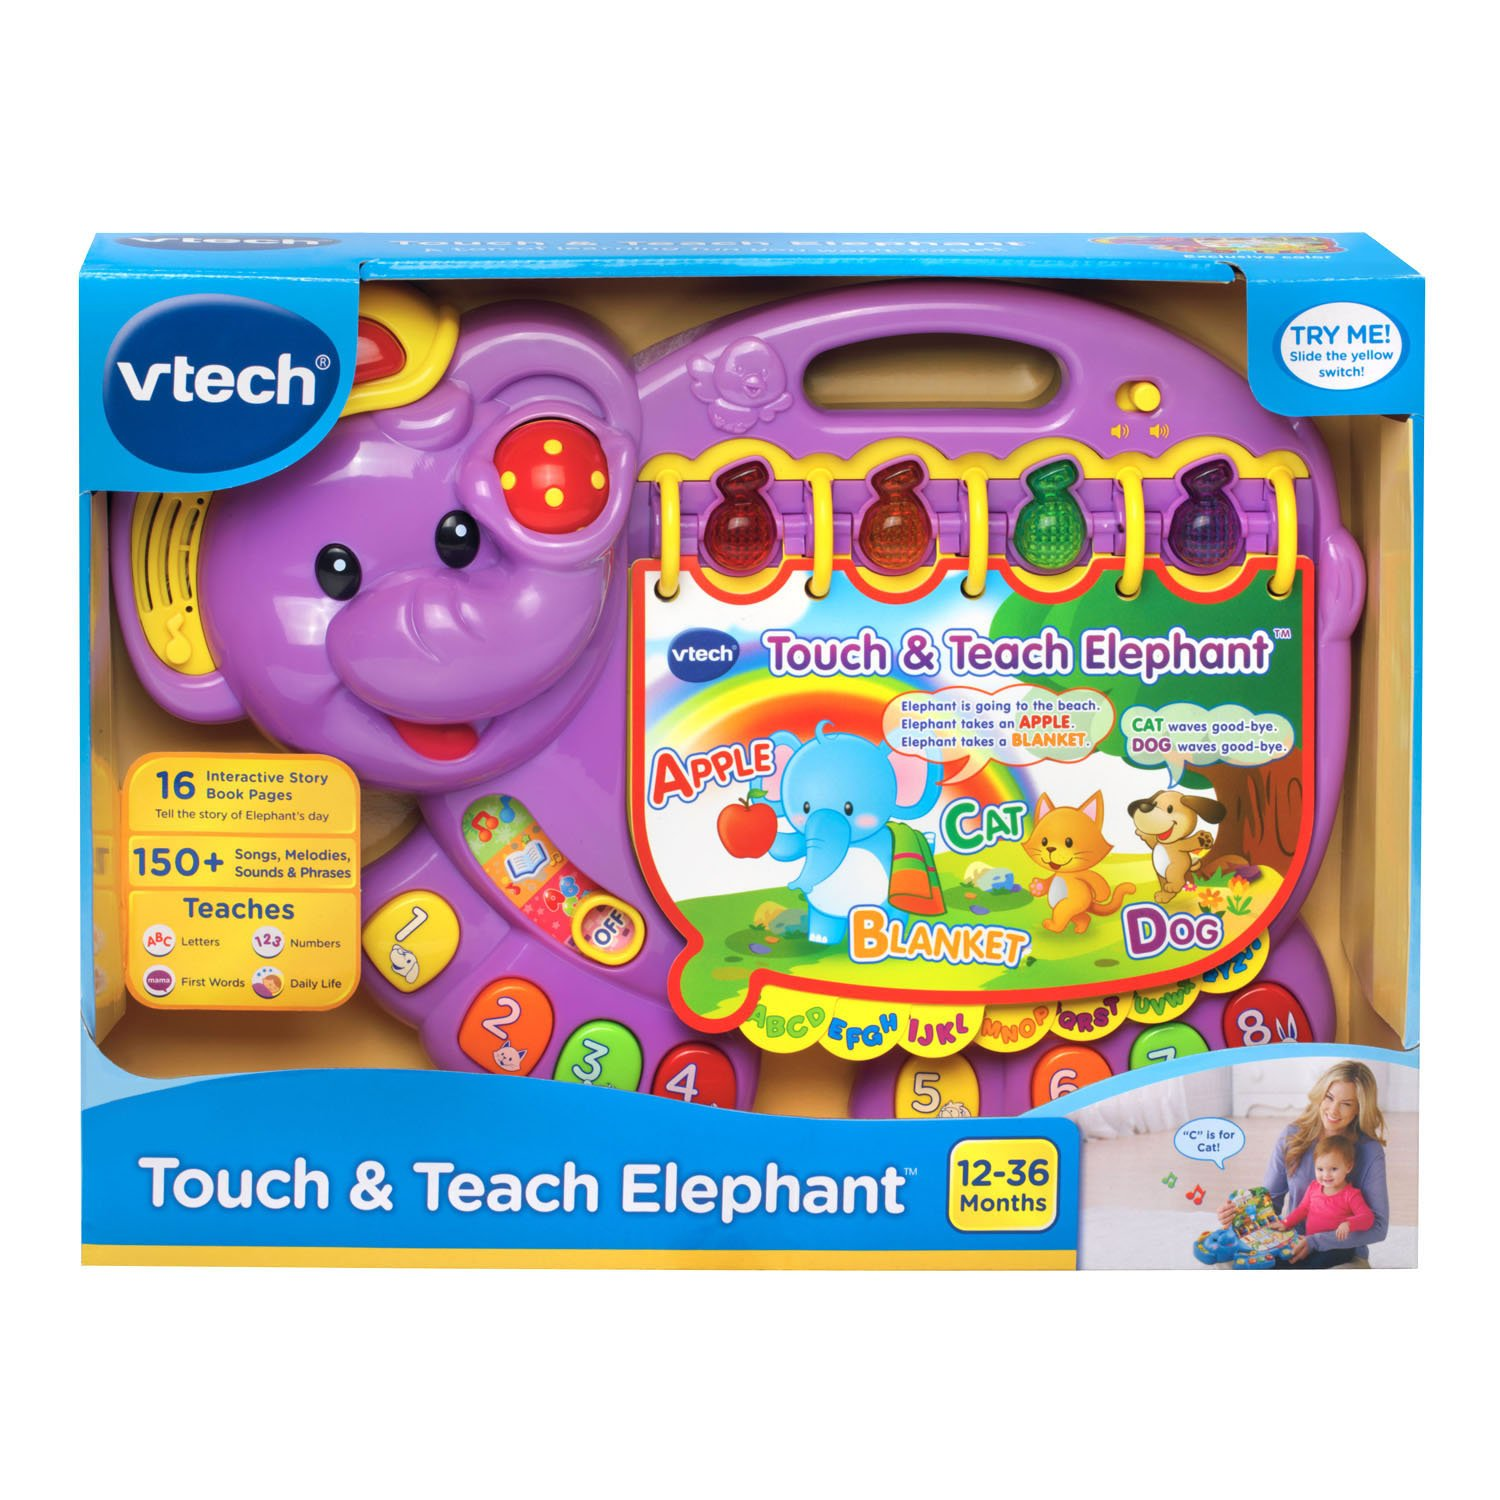 VTech Touch and Teach Elephant, Purple (Amazon Exclusive) by VTech (Image #5)